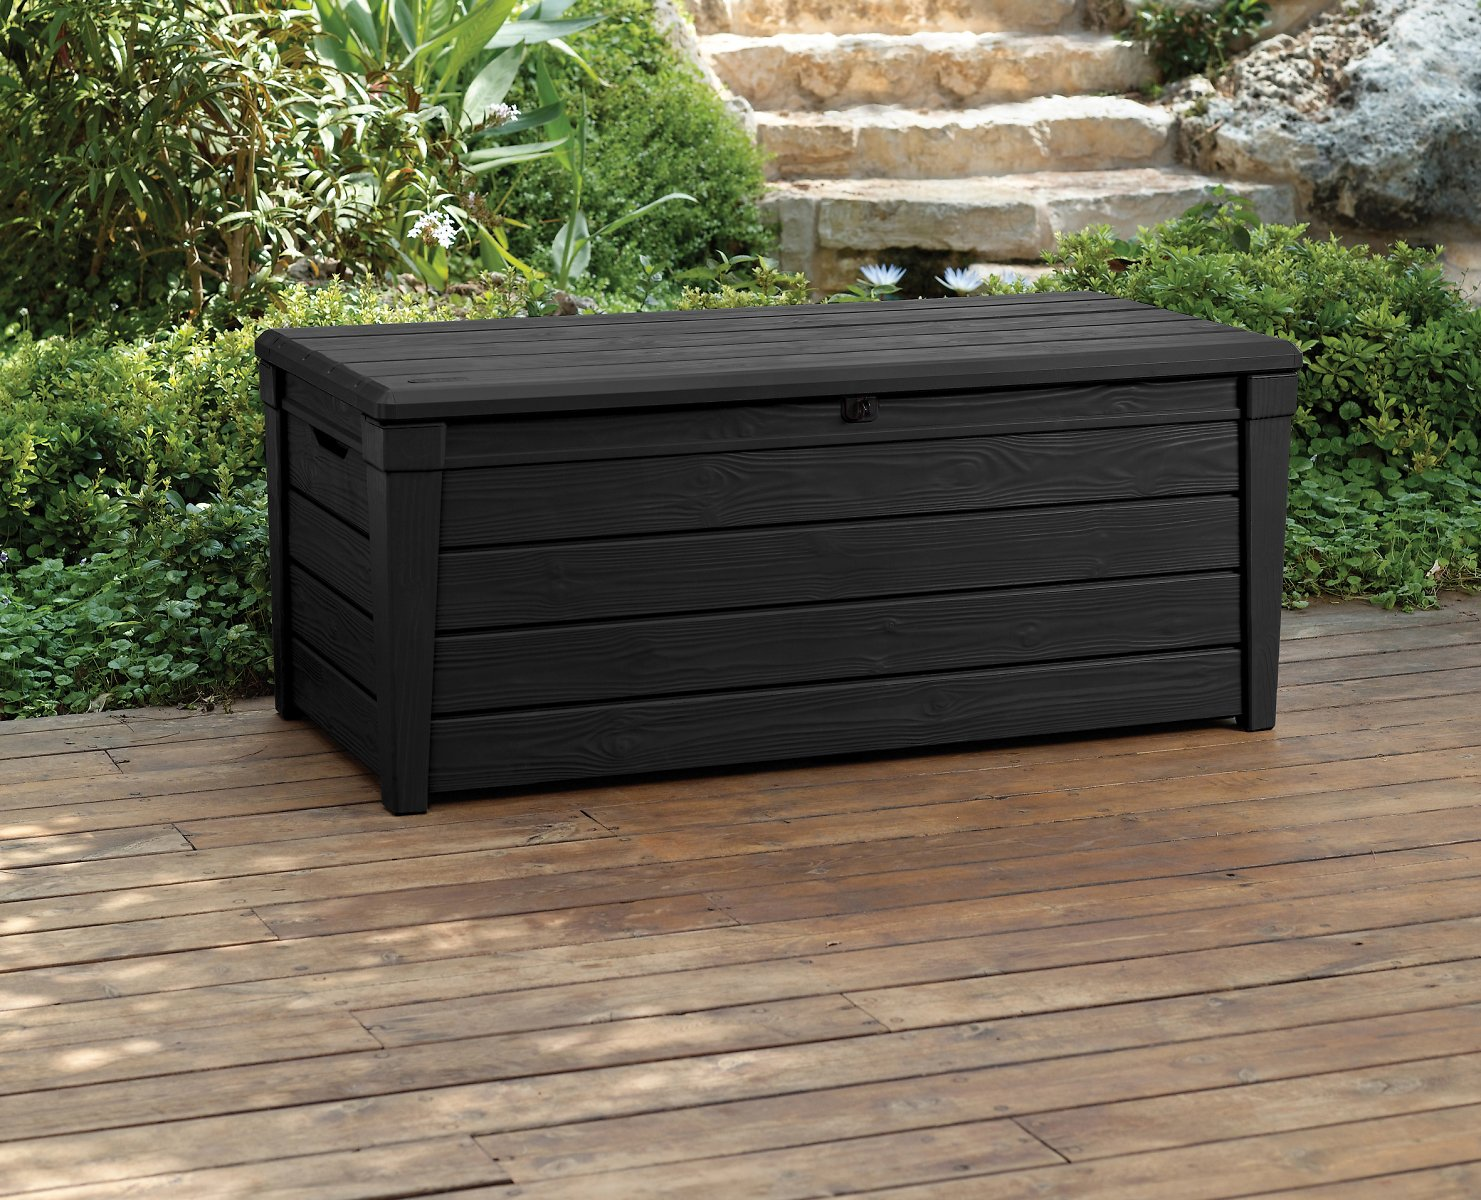 Keter Brightwood Outdoor Plastic Deck Box, All-Weather Resin Storage, 120 Gal, Anthracite Gray